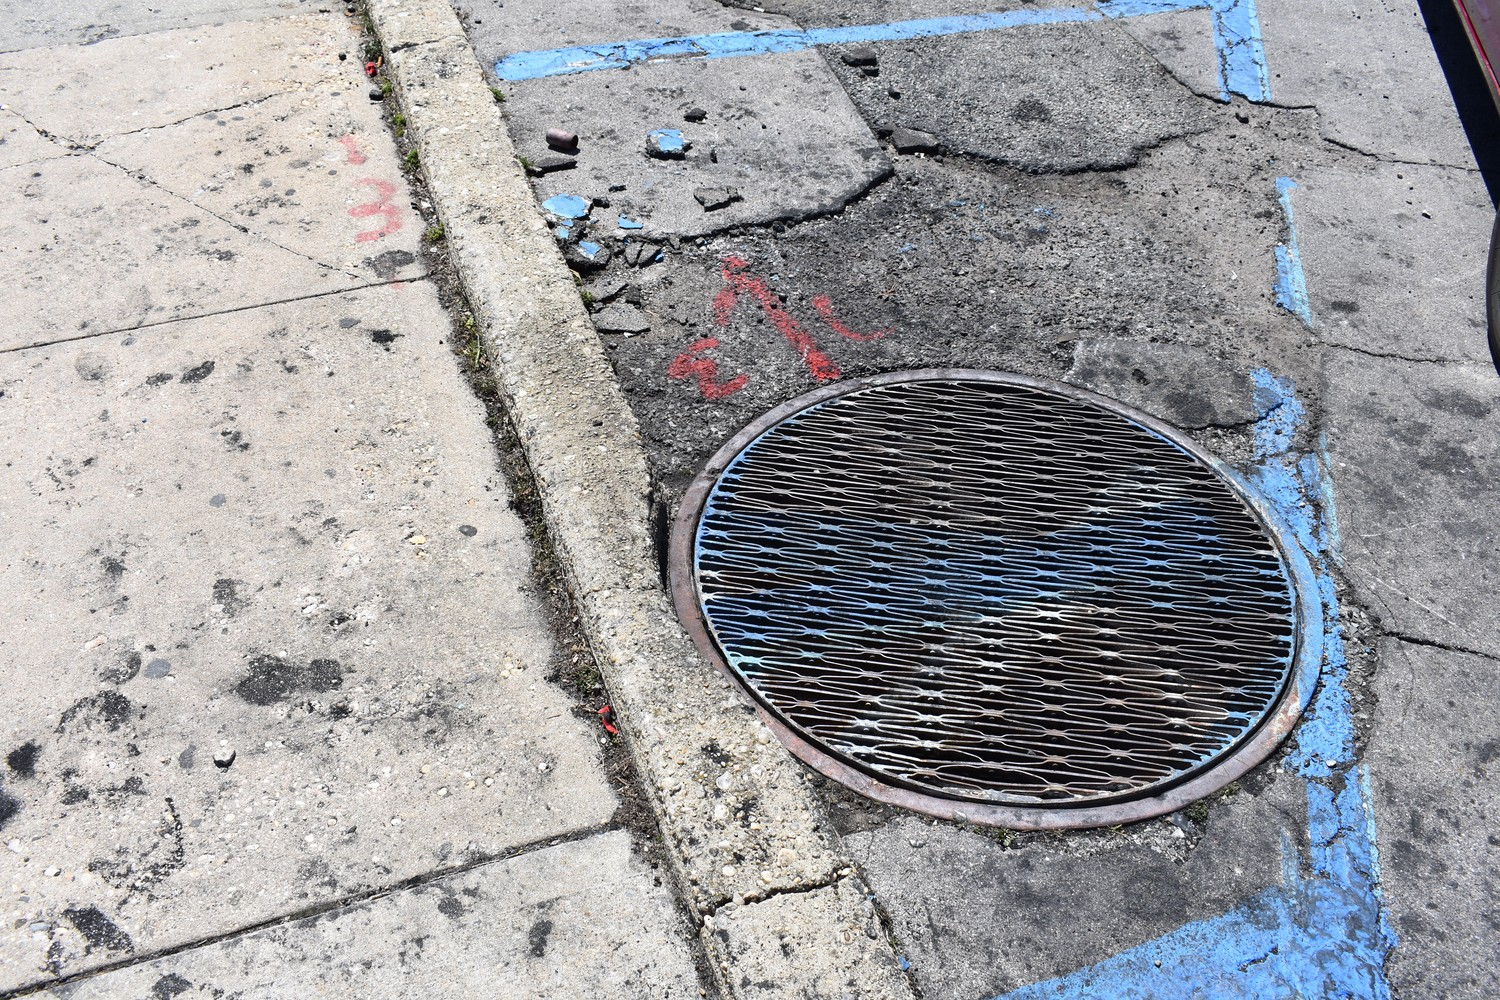 Firefighters opened this manhole to put out an underground fire on April 20.